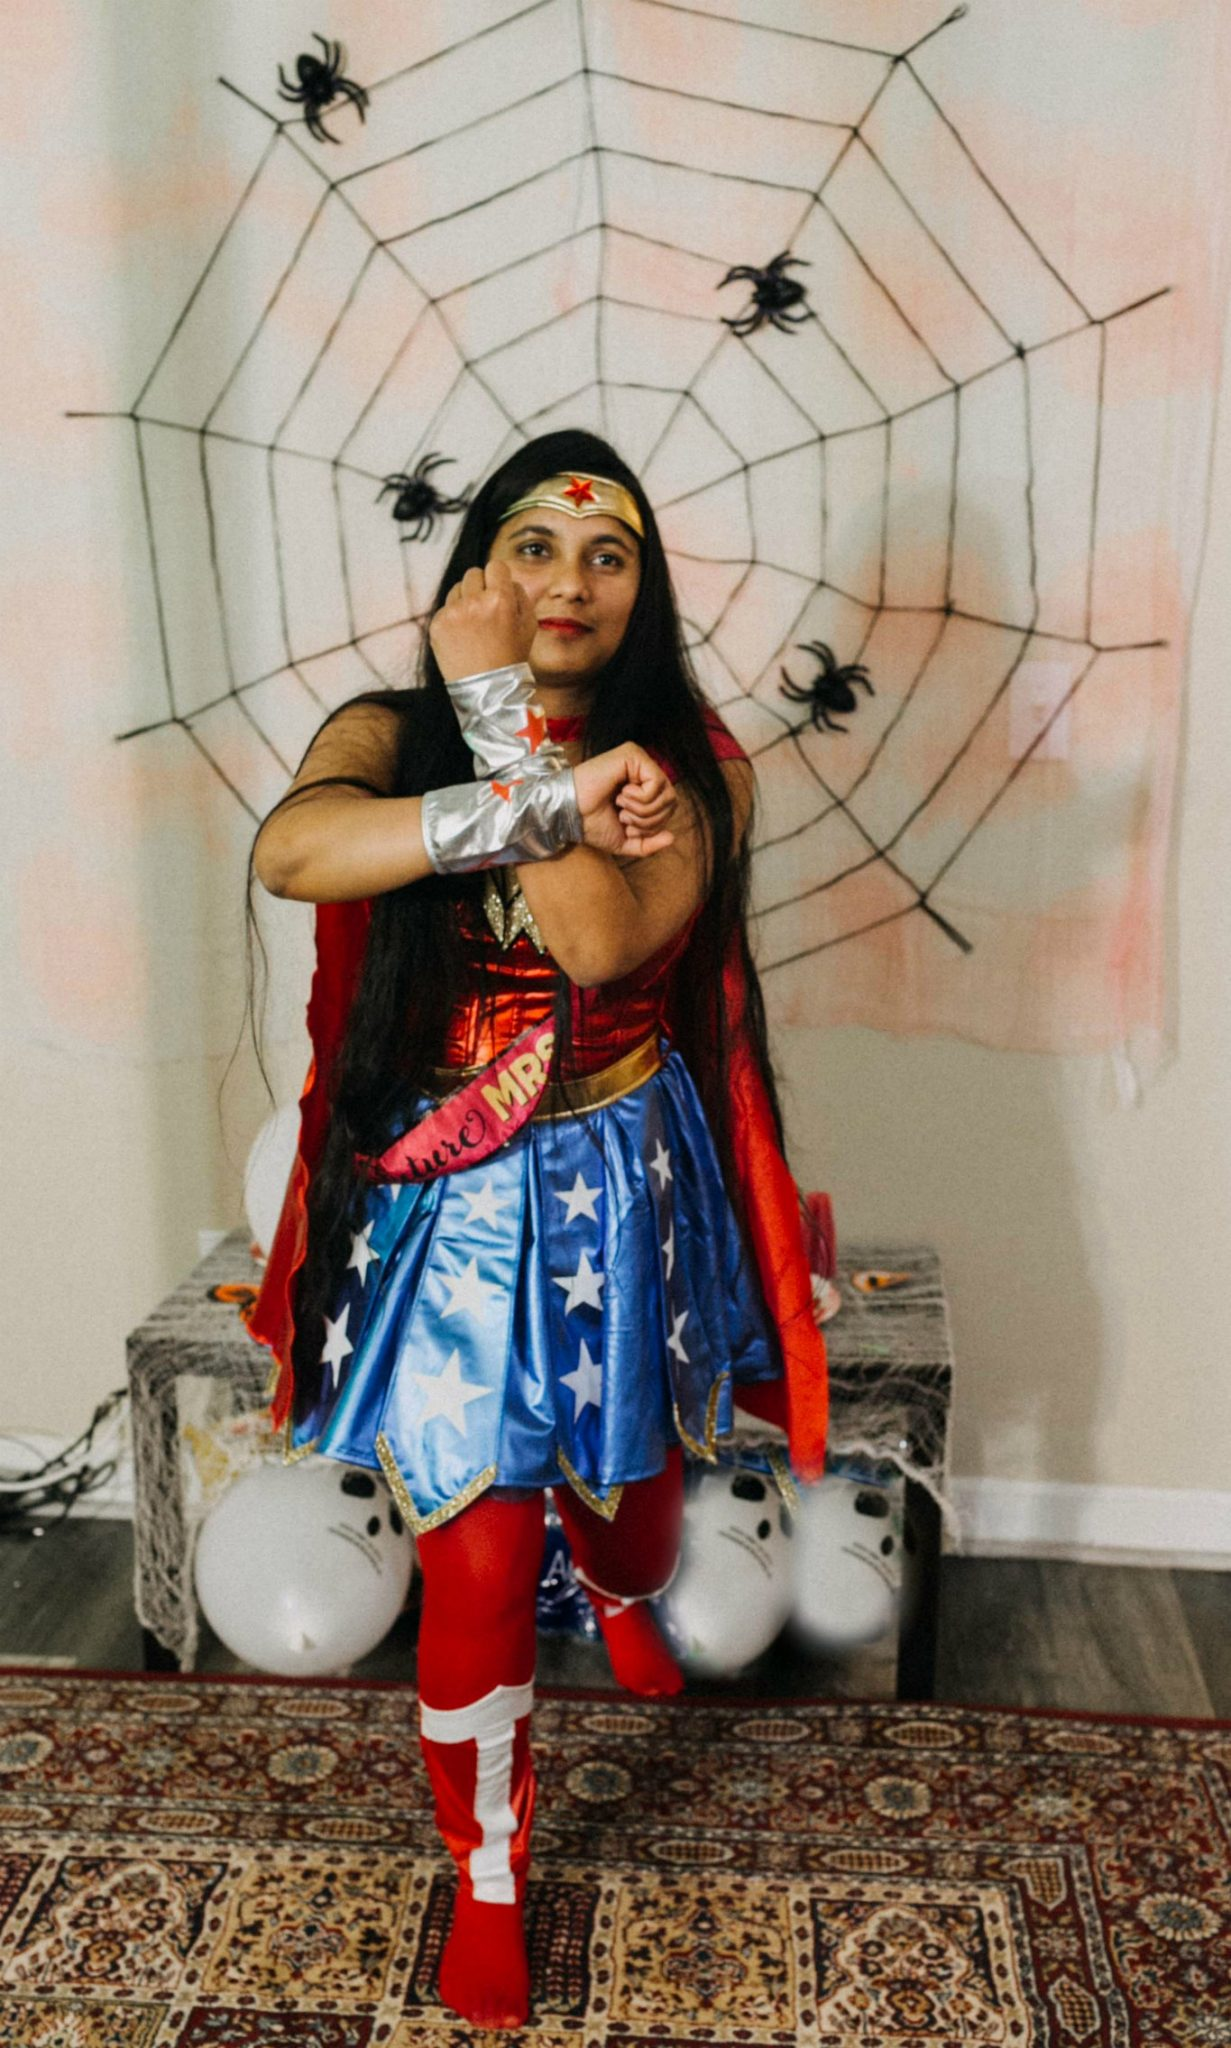 Halloween Bachelorette wonder women costume 95 Scary Fun Ideas for your Halloween Bachelorette Party- Costumes, Decorations and Games featured by top Ohio life and style blog, Dreaming Loud